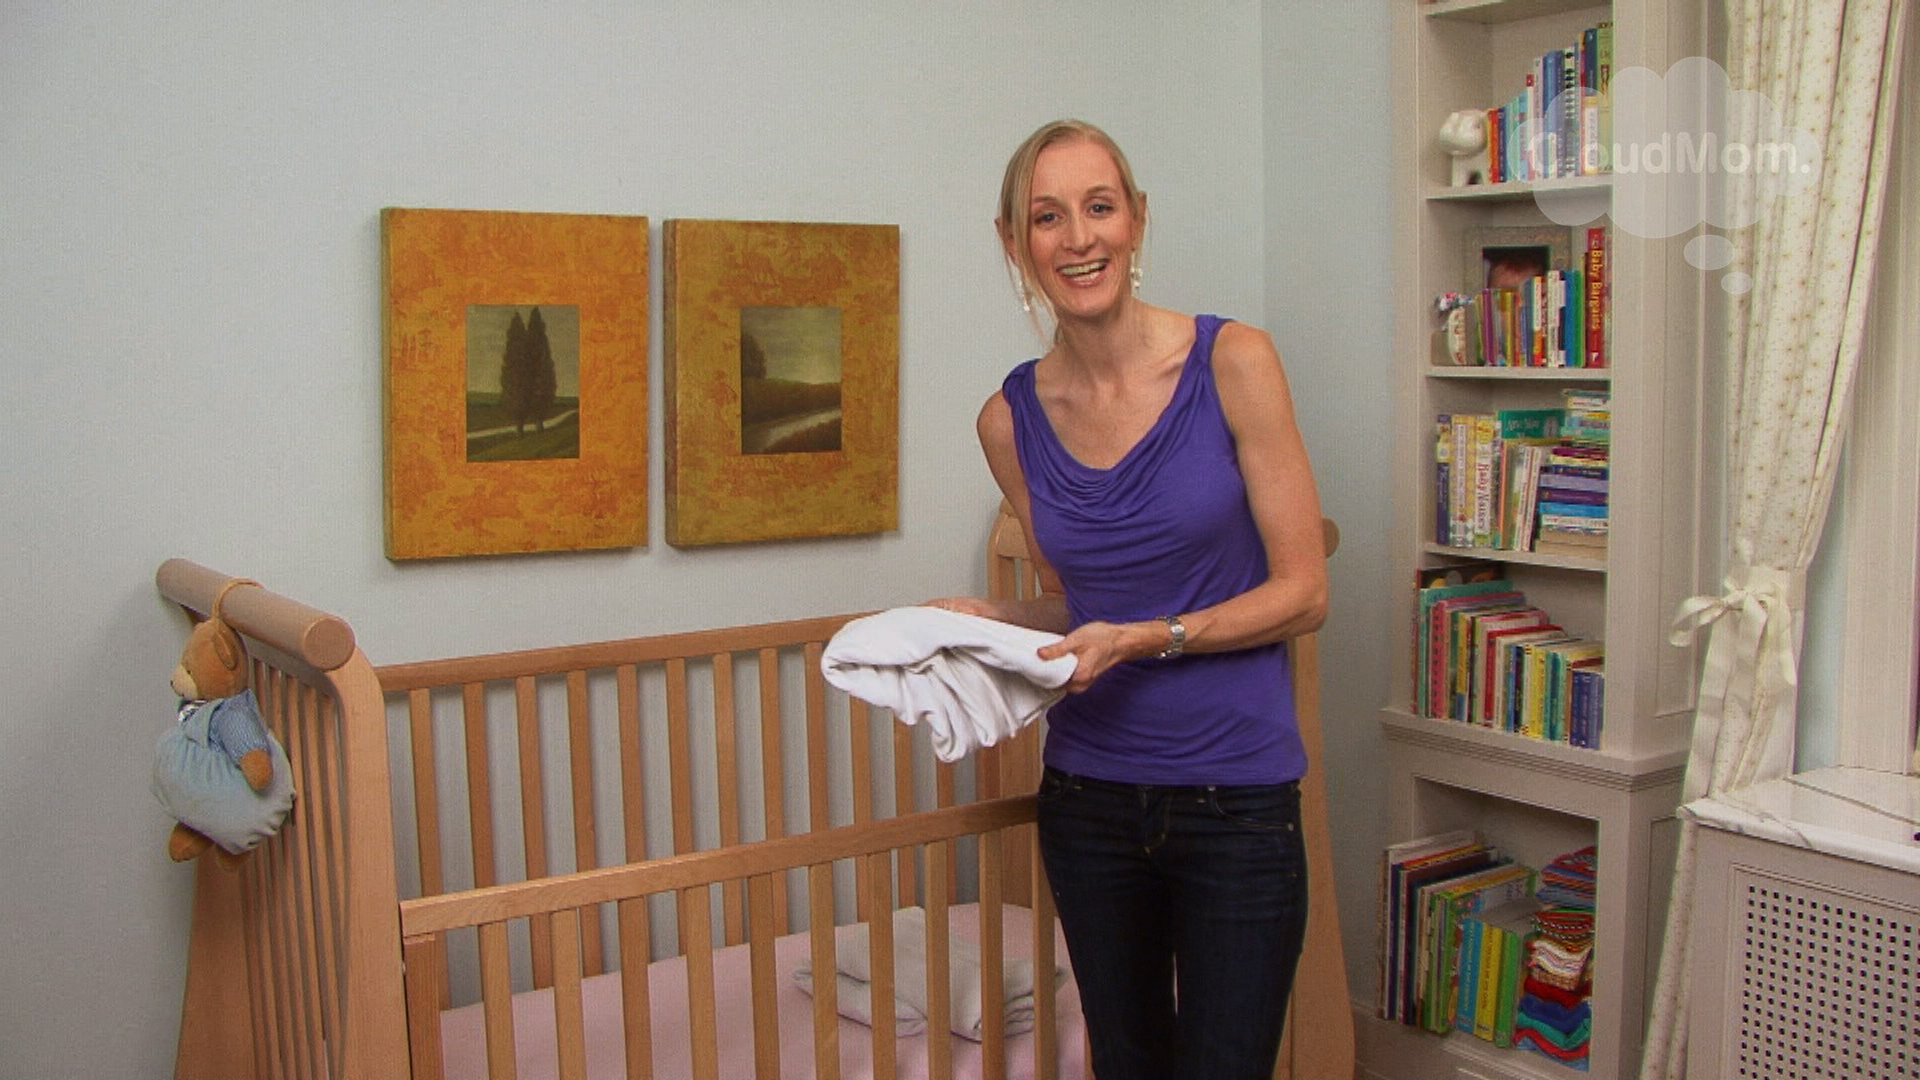 Infant Crib Sheets - What to Buy